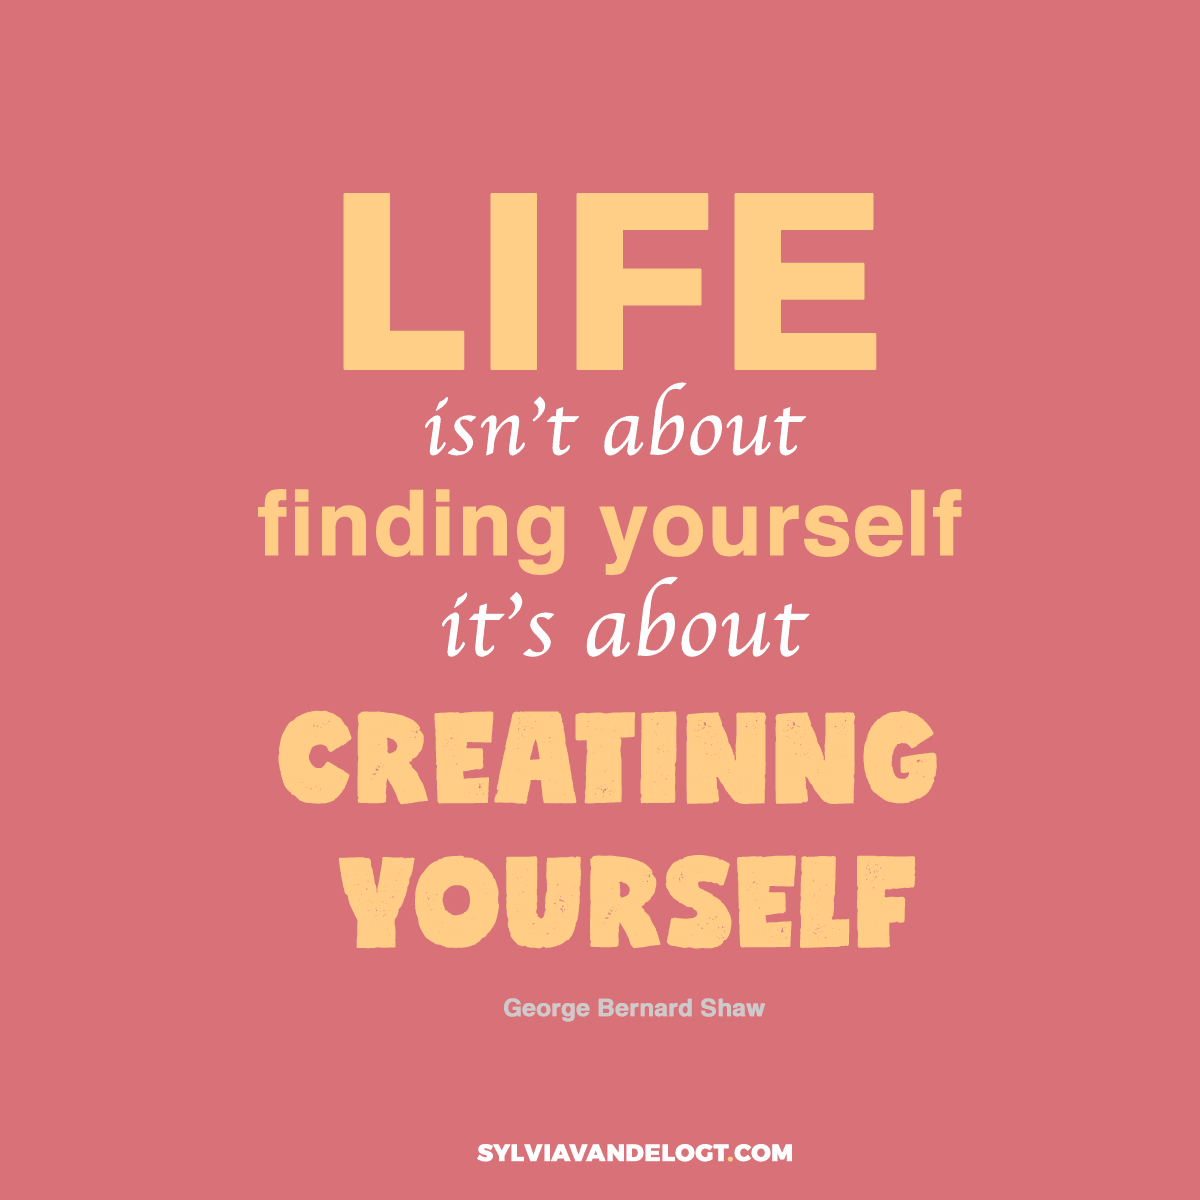 Life isn't about finding yourself, it's about creating yourself   quote   sylviavandelogt.com